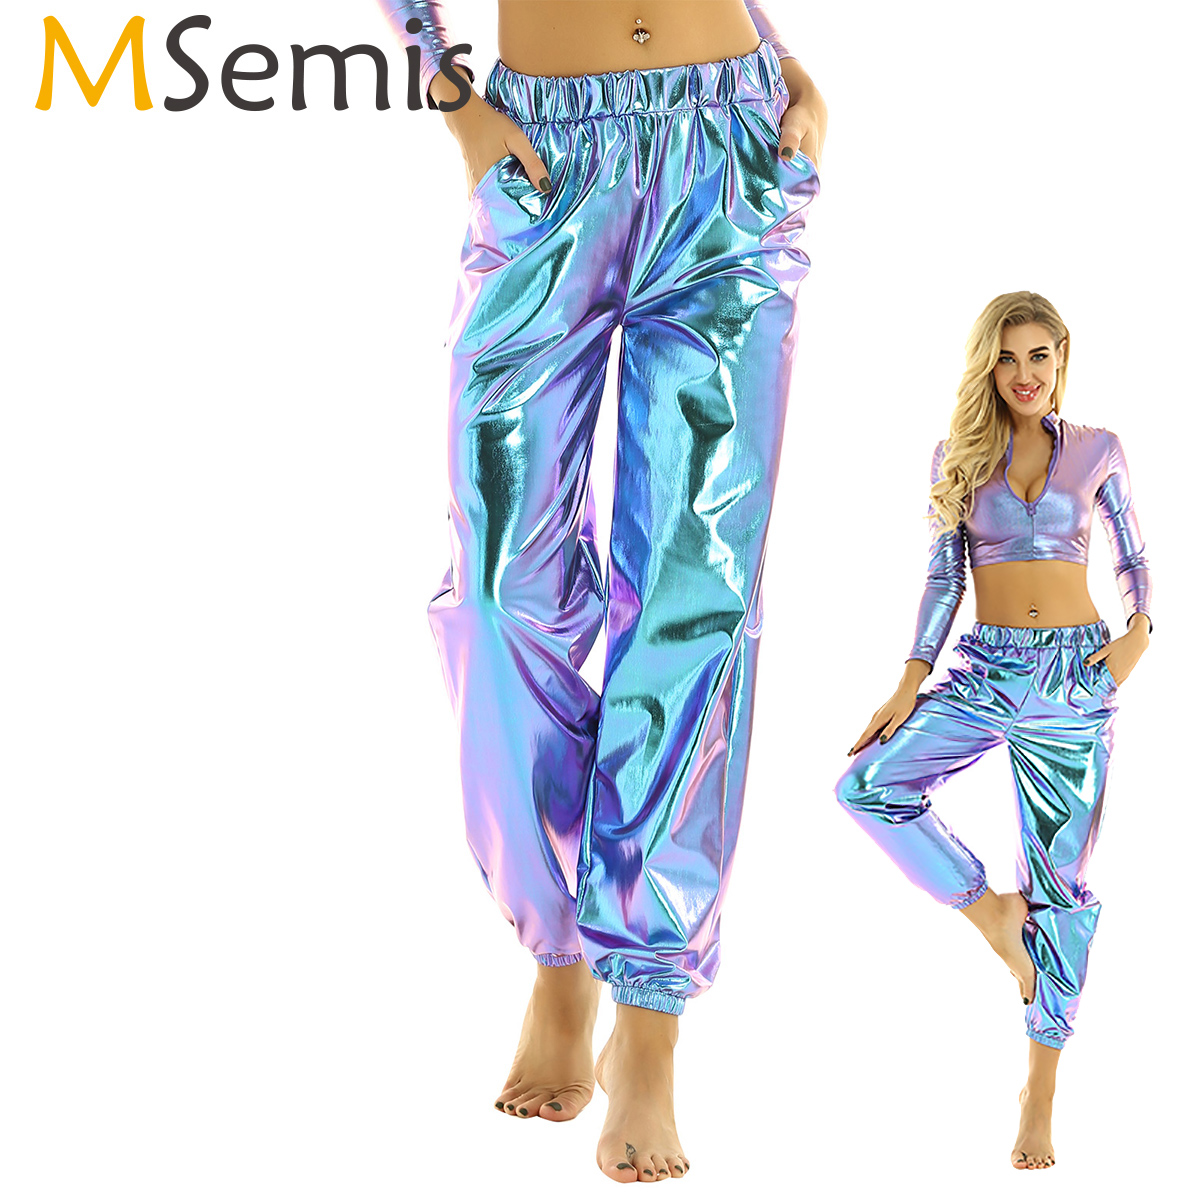 MSemis Womens Shiny Metallic Holographic Clothes Rave Festival Disco Pole Dance Wear Pants Sweatpant Hip Hop Trouser Street Wear